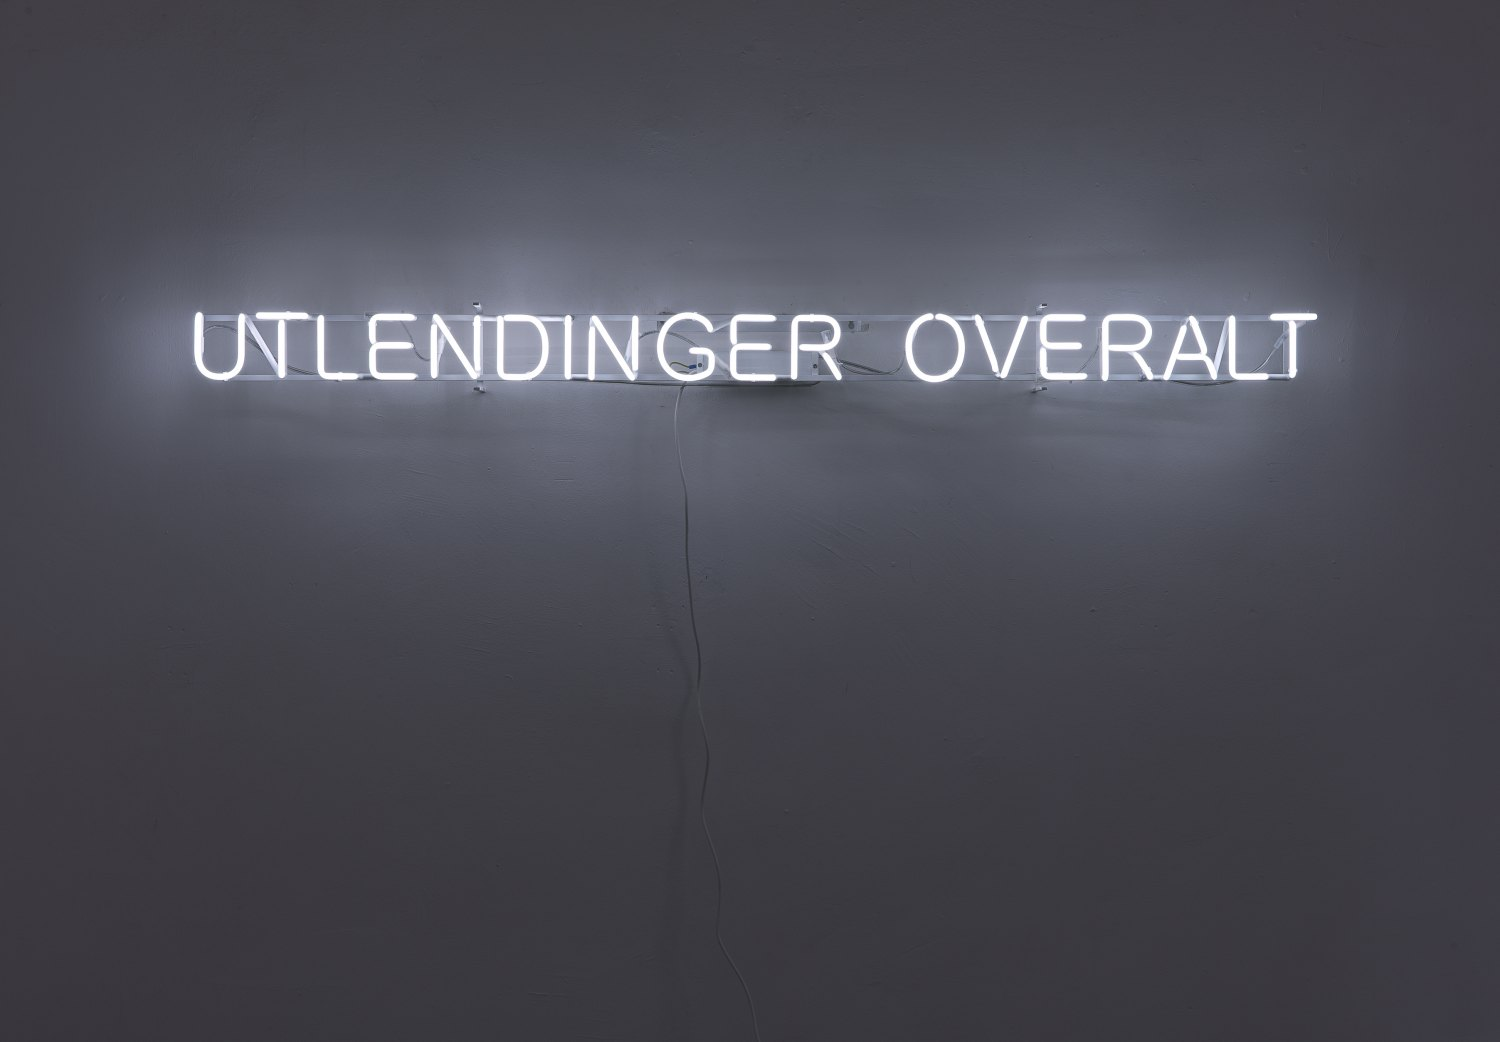 Claire Fontaine Foreigners everywhere (Norwegian), 2007 Suspended, wall or window mounted neon, framework, electronic transformer, cables, 9.8 × 163 × 4.5 cm